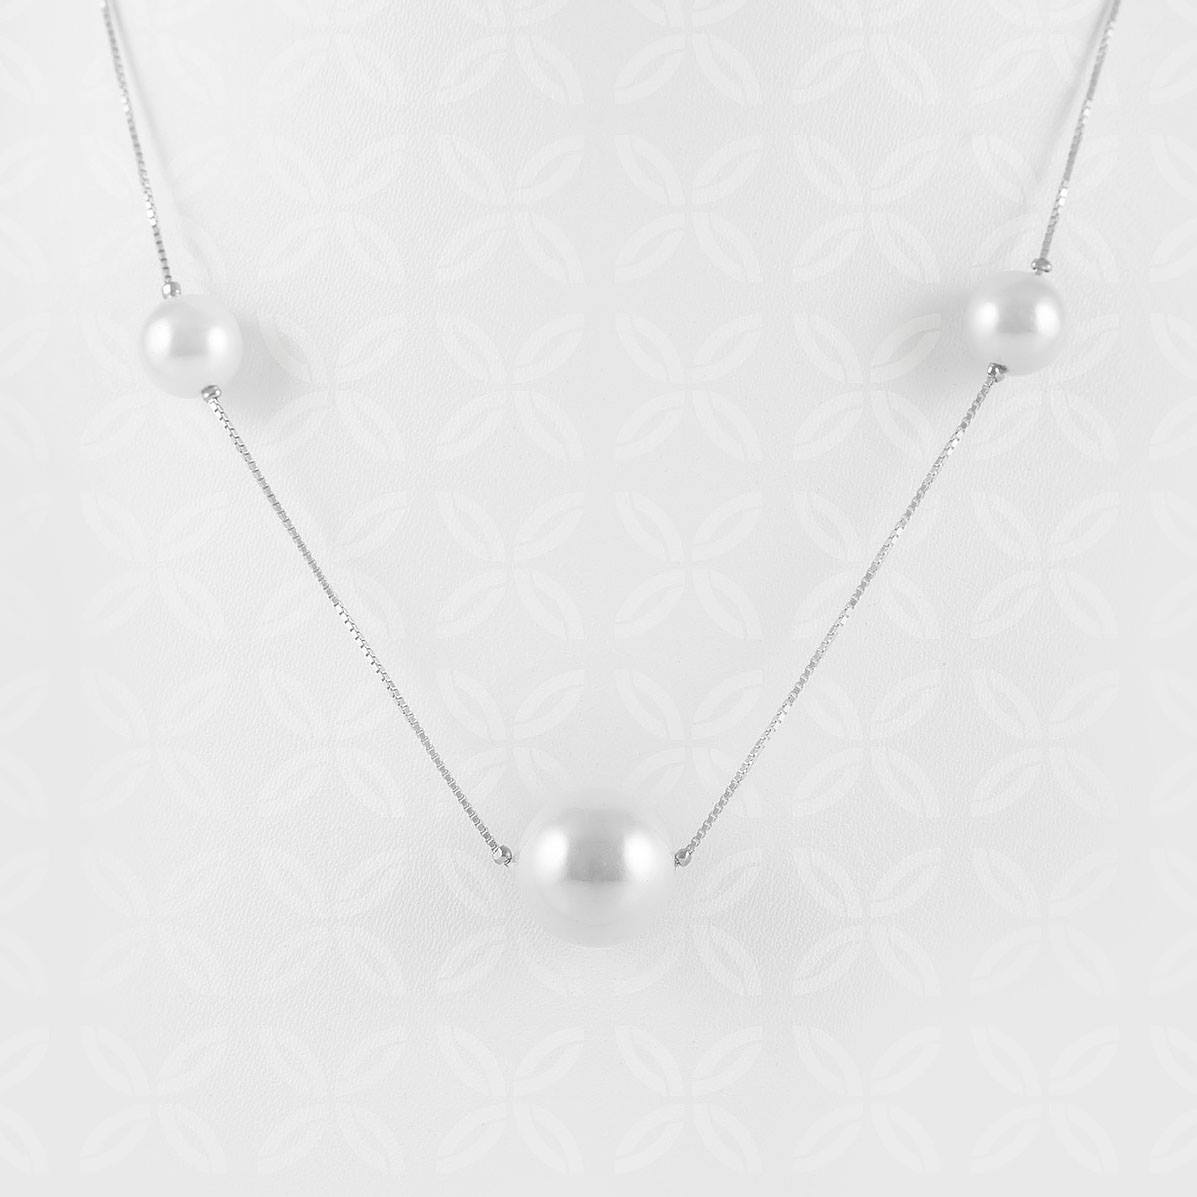 Triple Pearls Silver Necklace